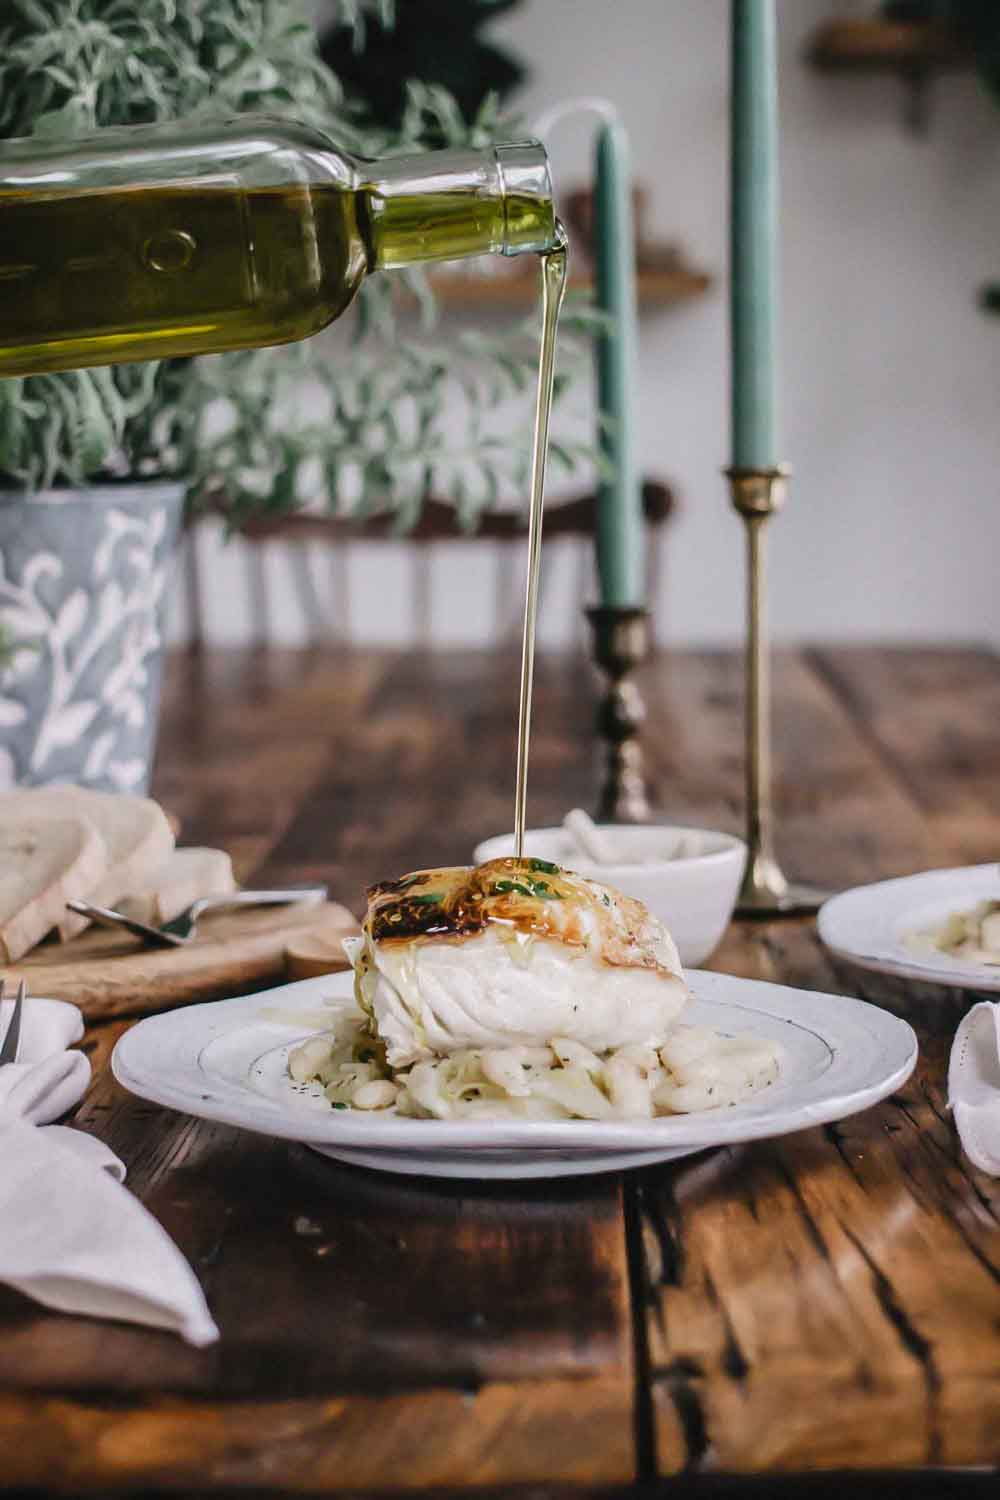 Fish and Beans Recipe - Pan Seared Halibut Recipe With Garlic Cannellini Beans And Fennel